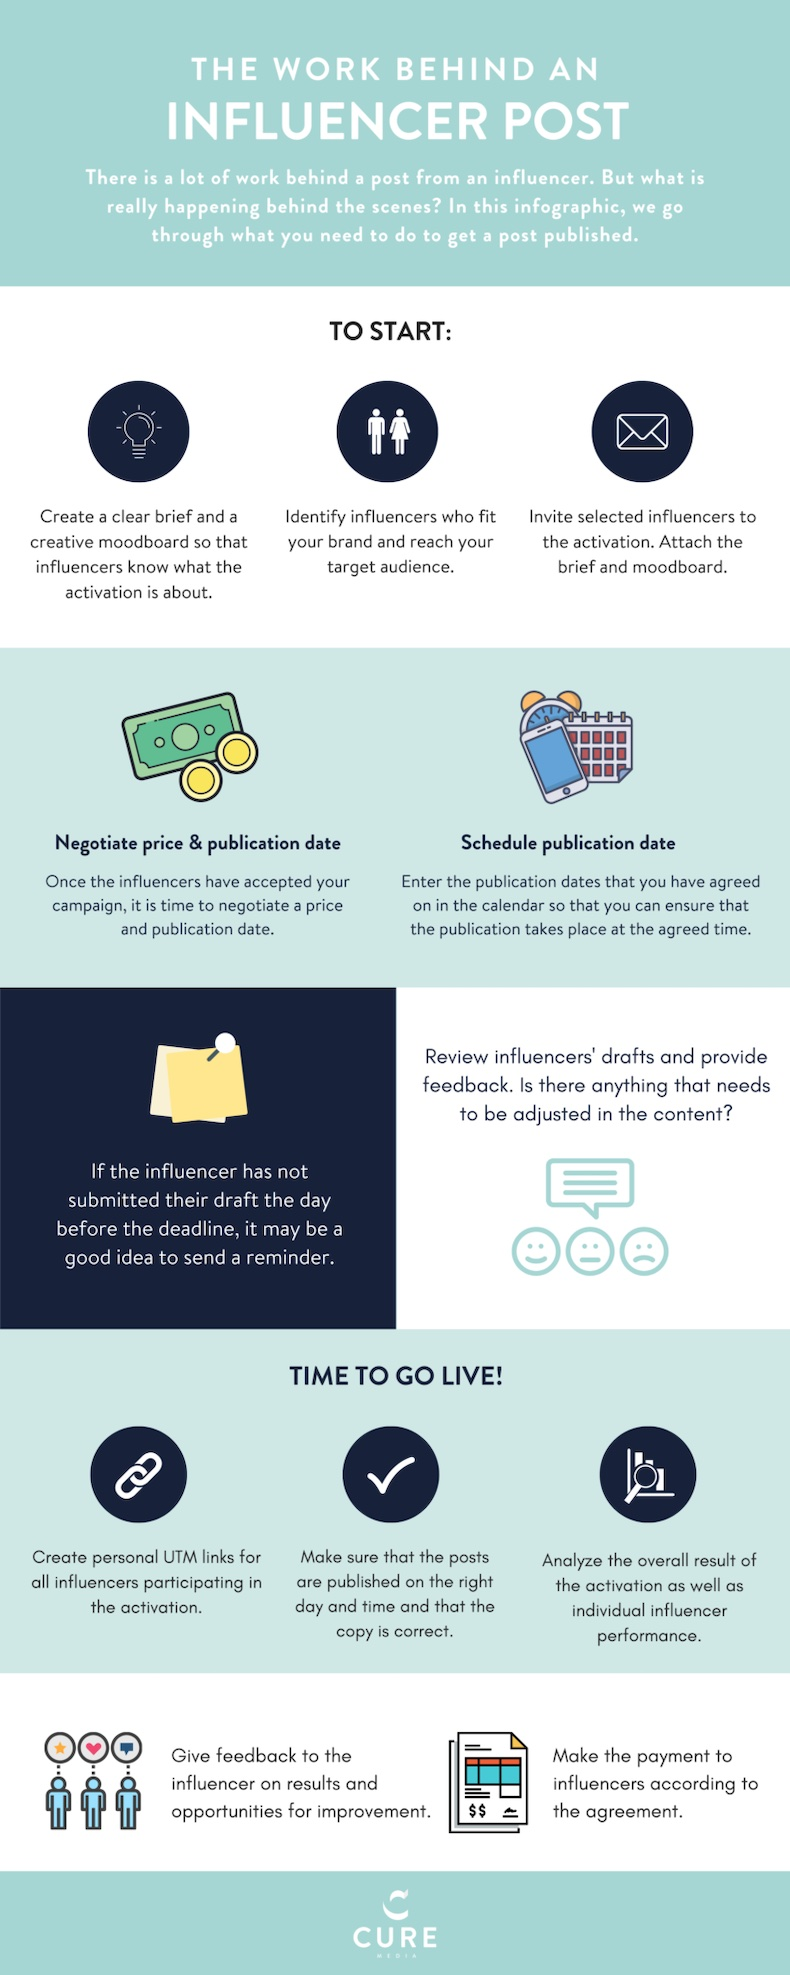 The work behind an influencer post infographic